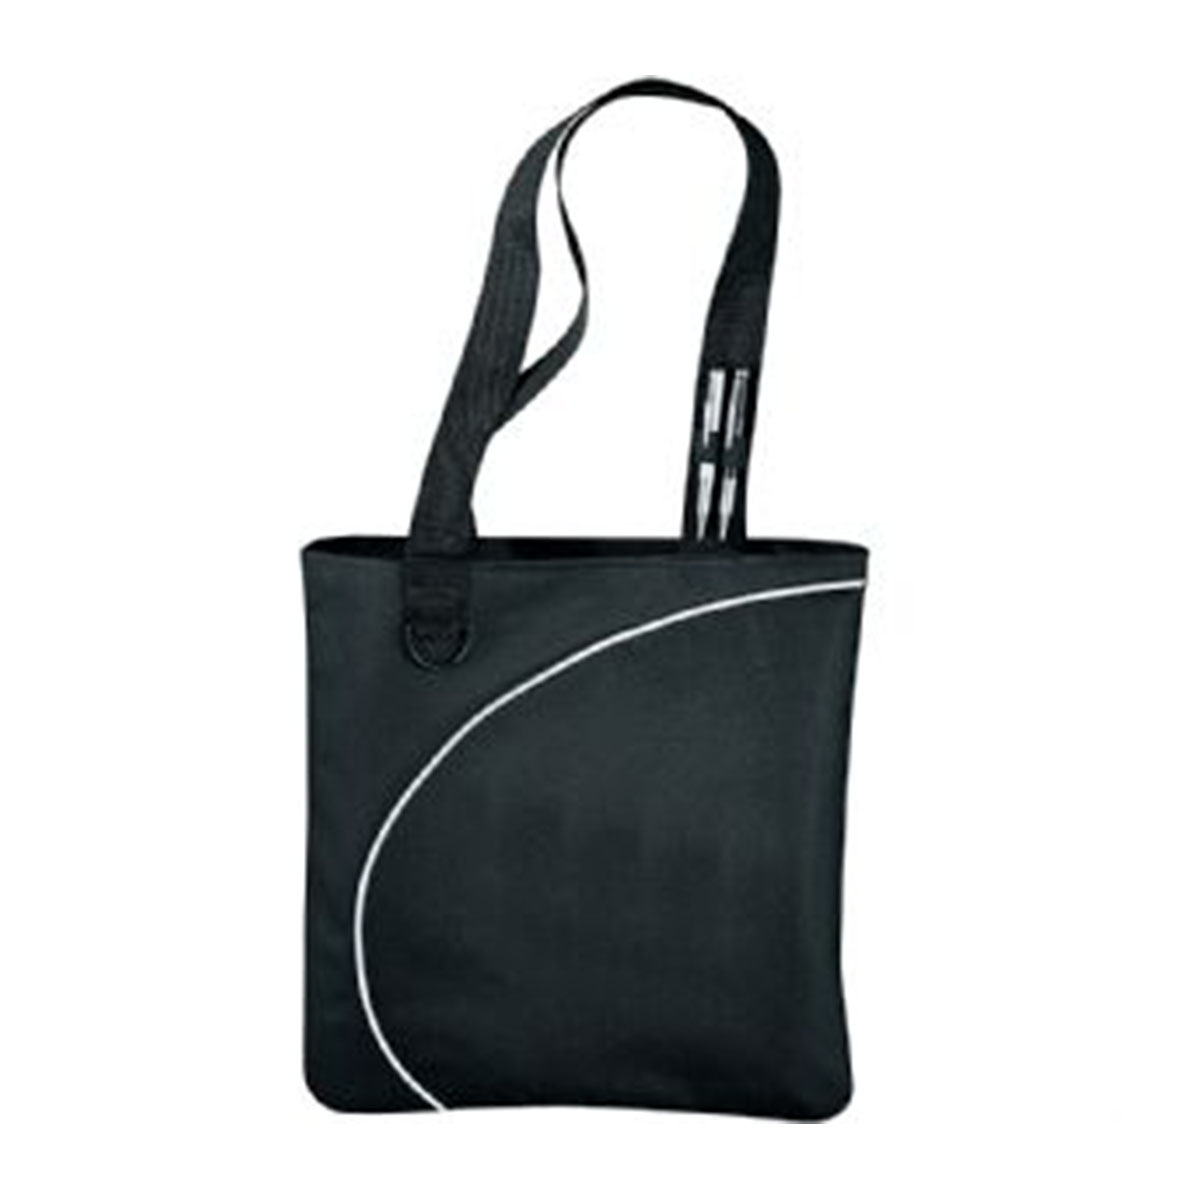 Lunar Convention Tote-Black with White Trim.